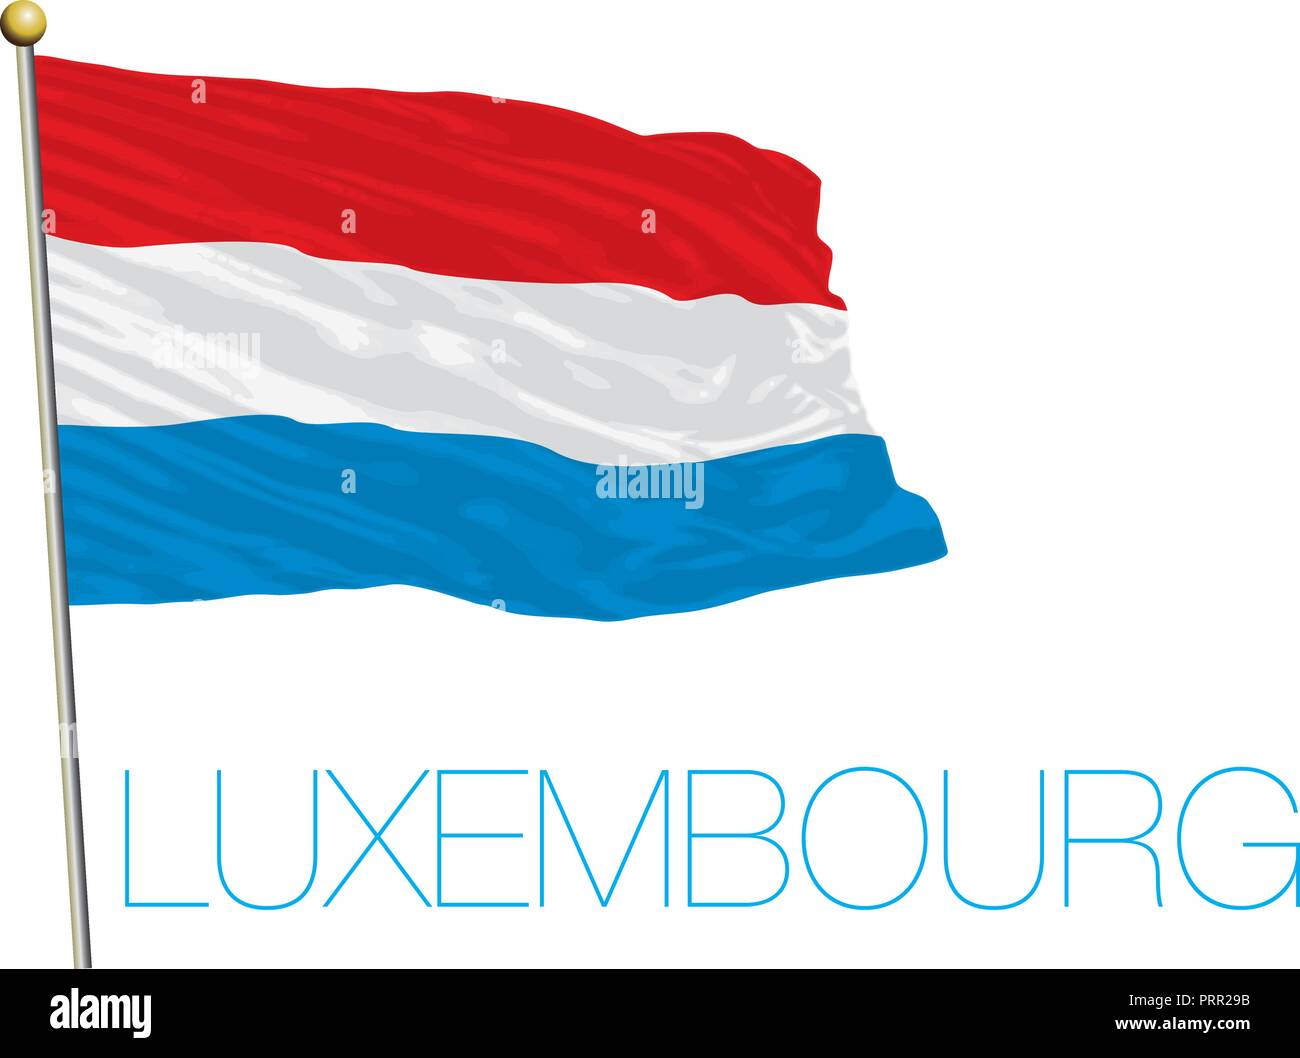 Luxembourg official flag, vector illustration - Stock Image